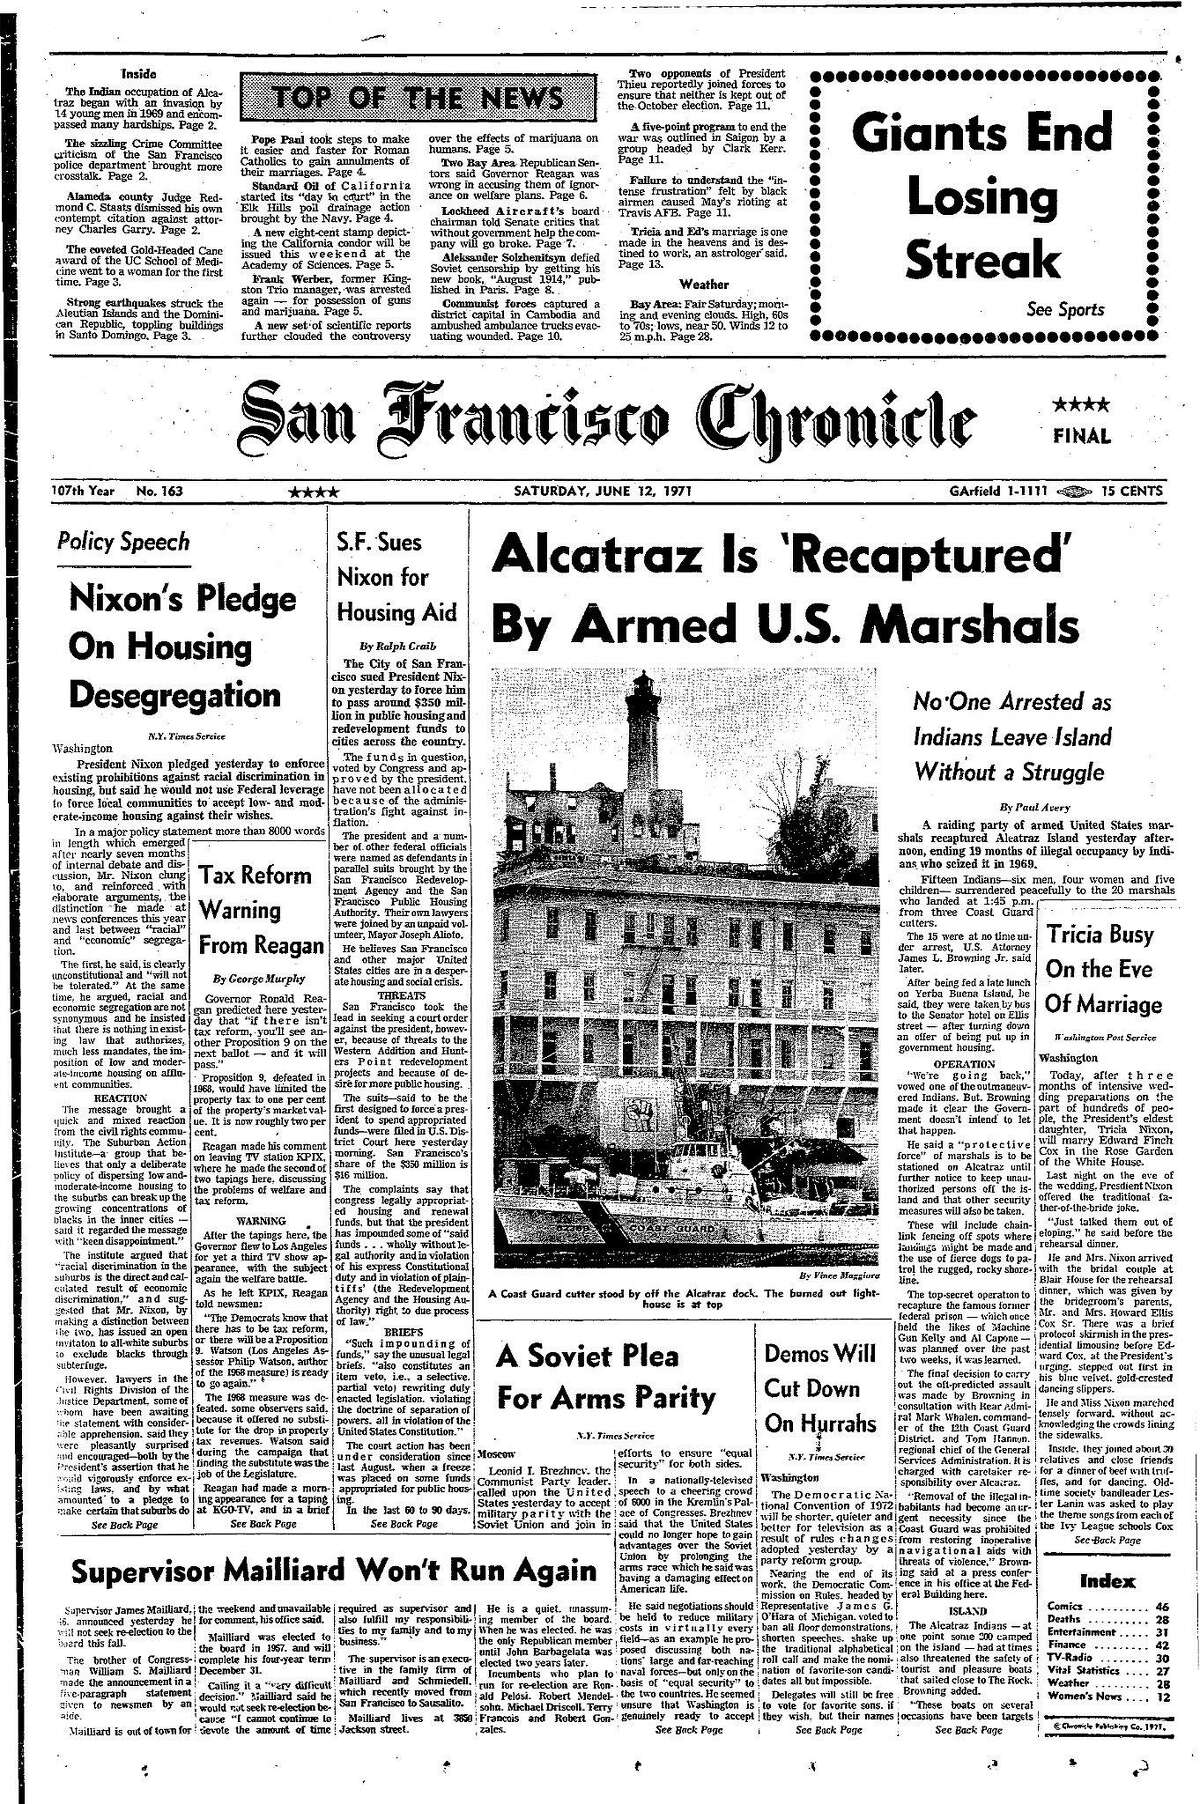 Historic Chronicle Front Page June 12, 1971 Alcatraz retaken by U.S. Marshalls, ni one arrested as Indians leave island without a struggle Chron365, Chroncover